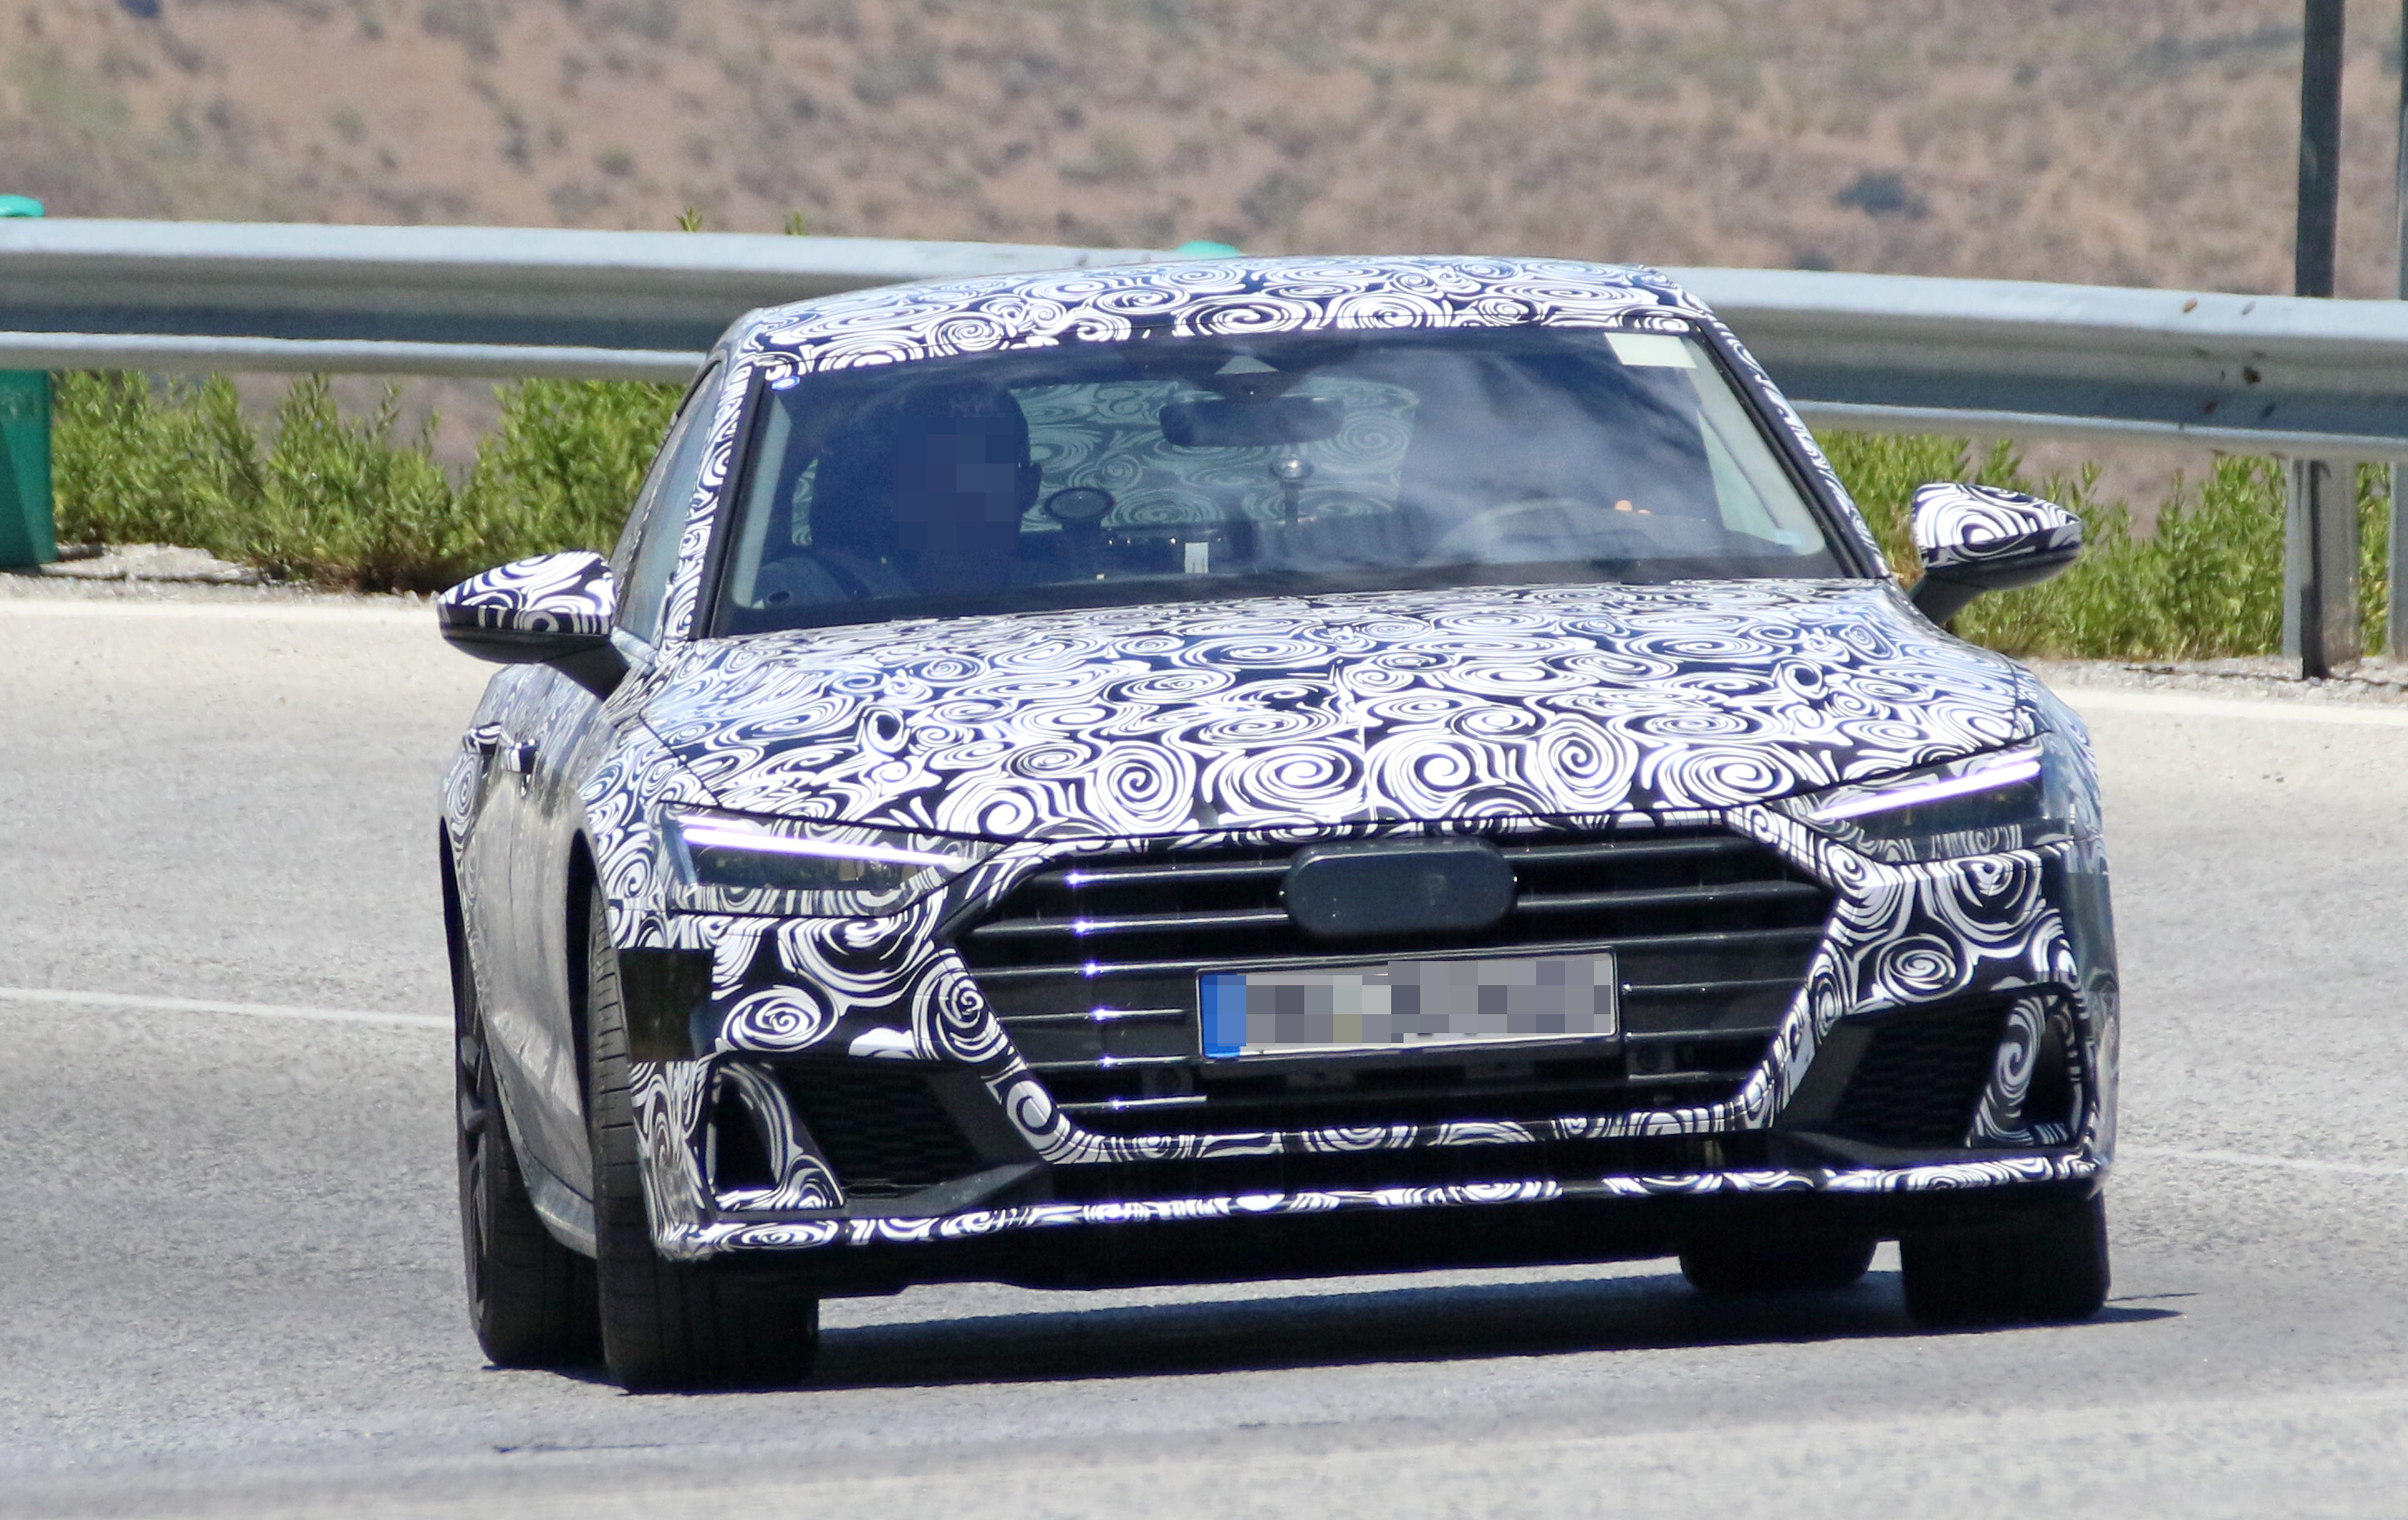 Audi S Spied Testing In The Heat Of Southern Europe - 2018 audi s7